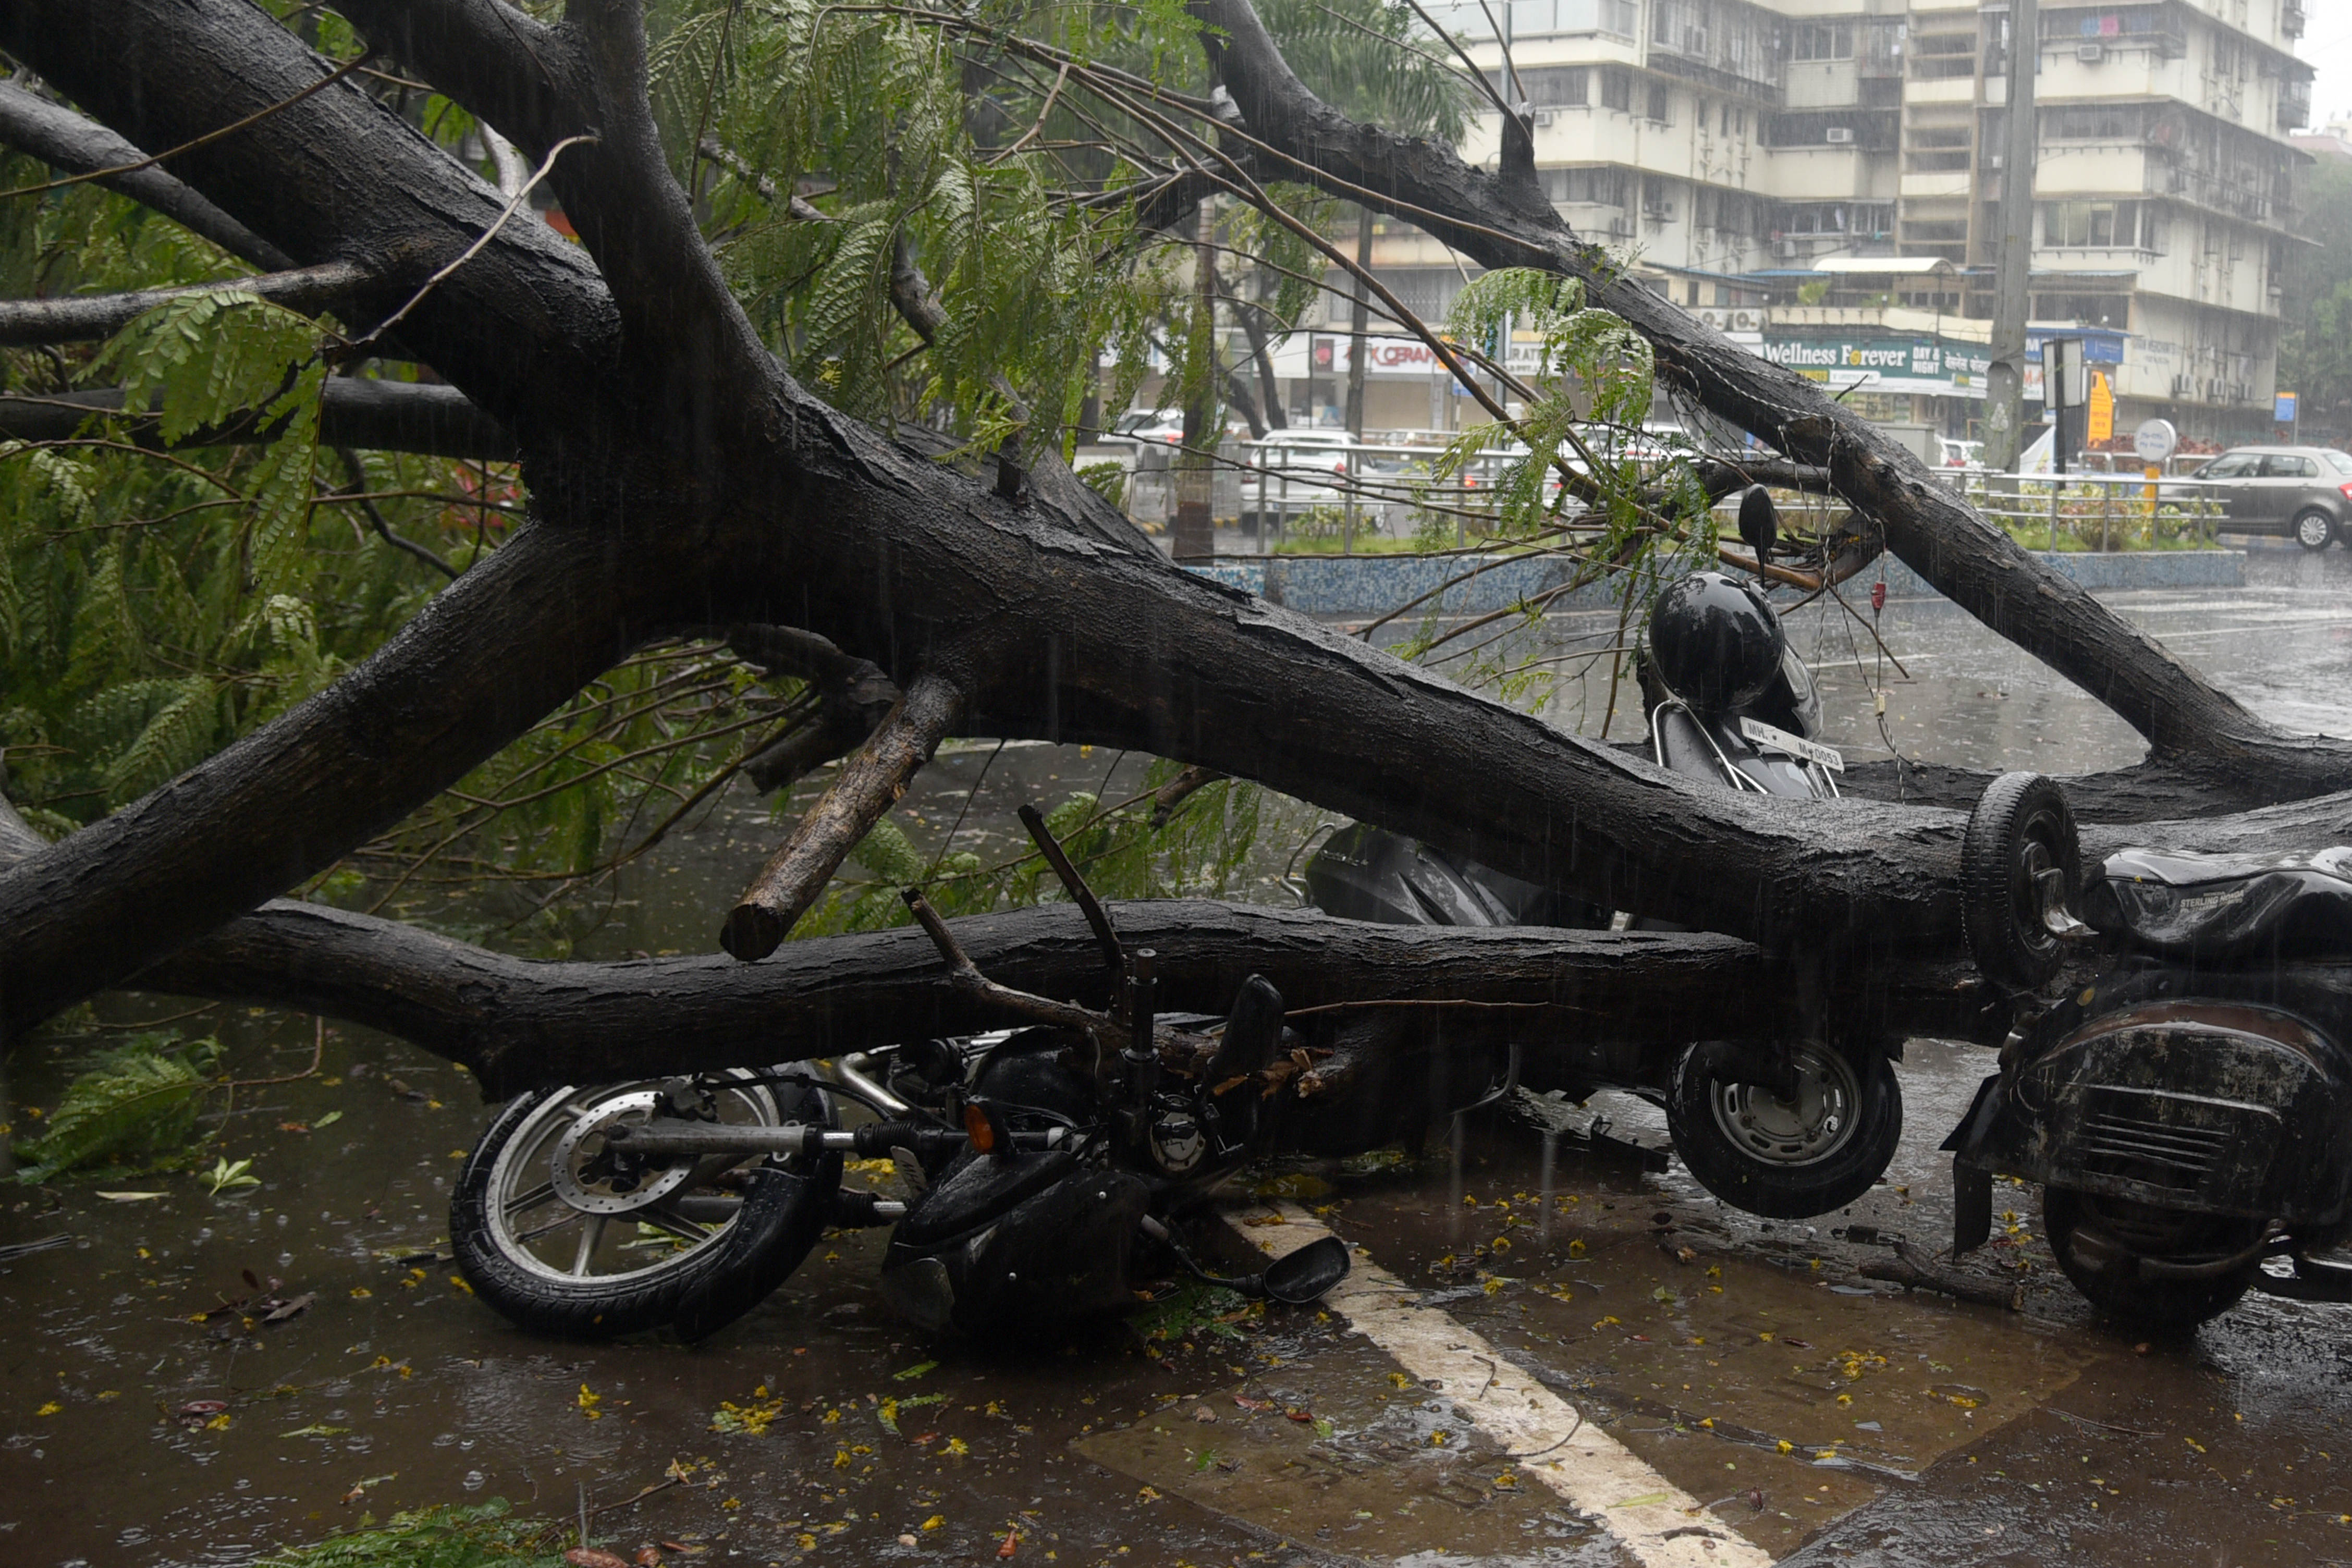 Here some two-wheelers which are damaged beyond repair can be seen under a fallen tree in Navi Mumbai.